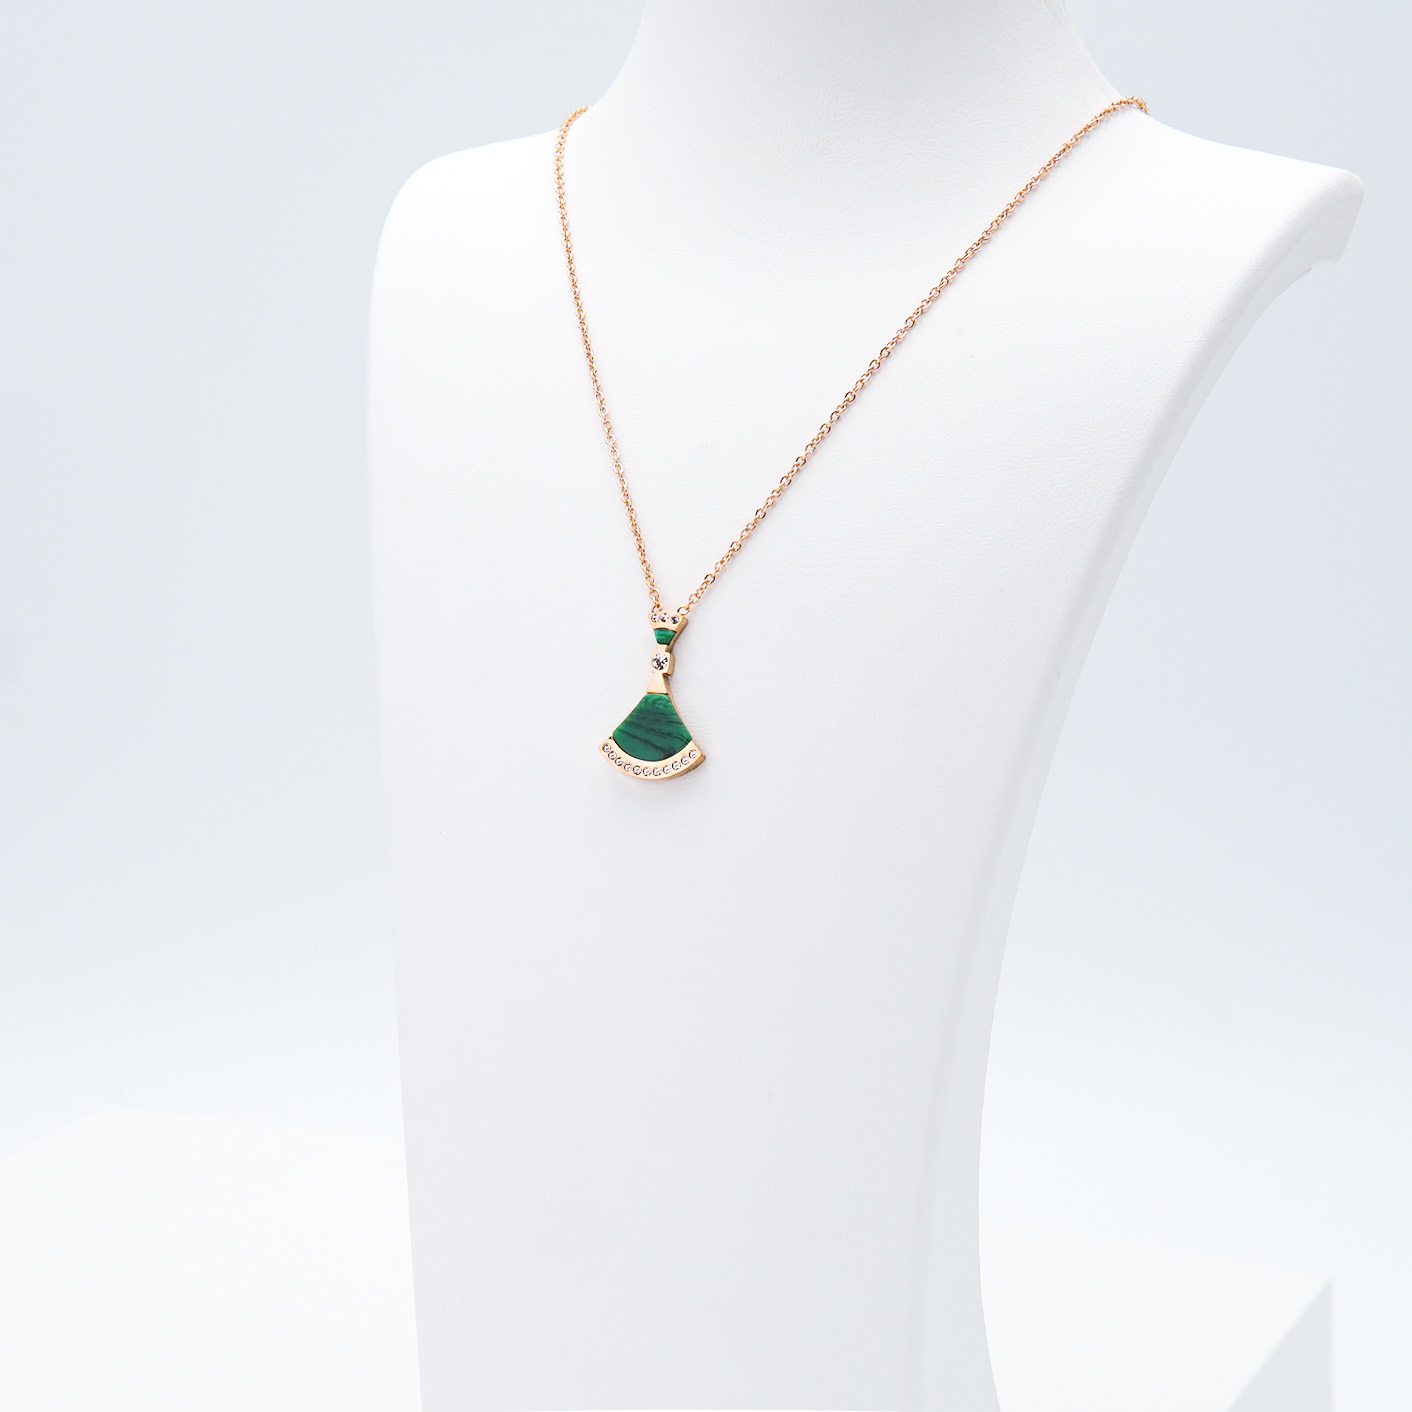 2- Elixir - Gold Edition Halsband Modern and trendy Necklace and women jewelry and accessories from SWEVALI fashion Sweden